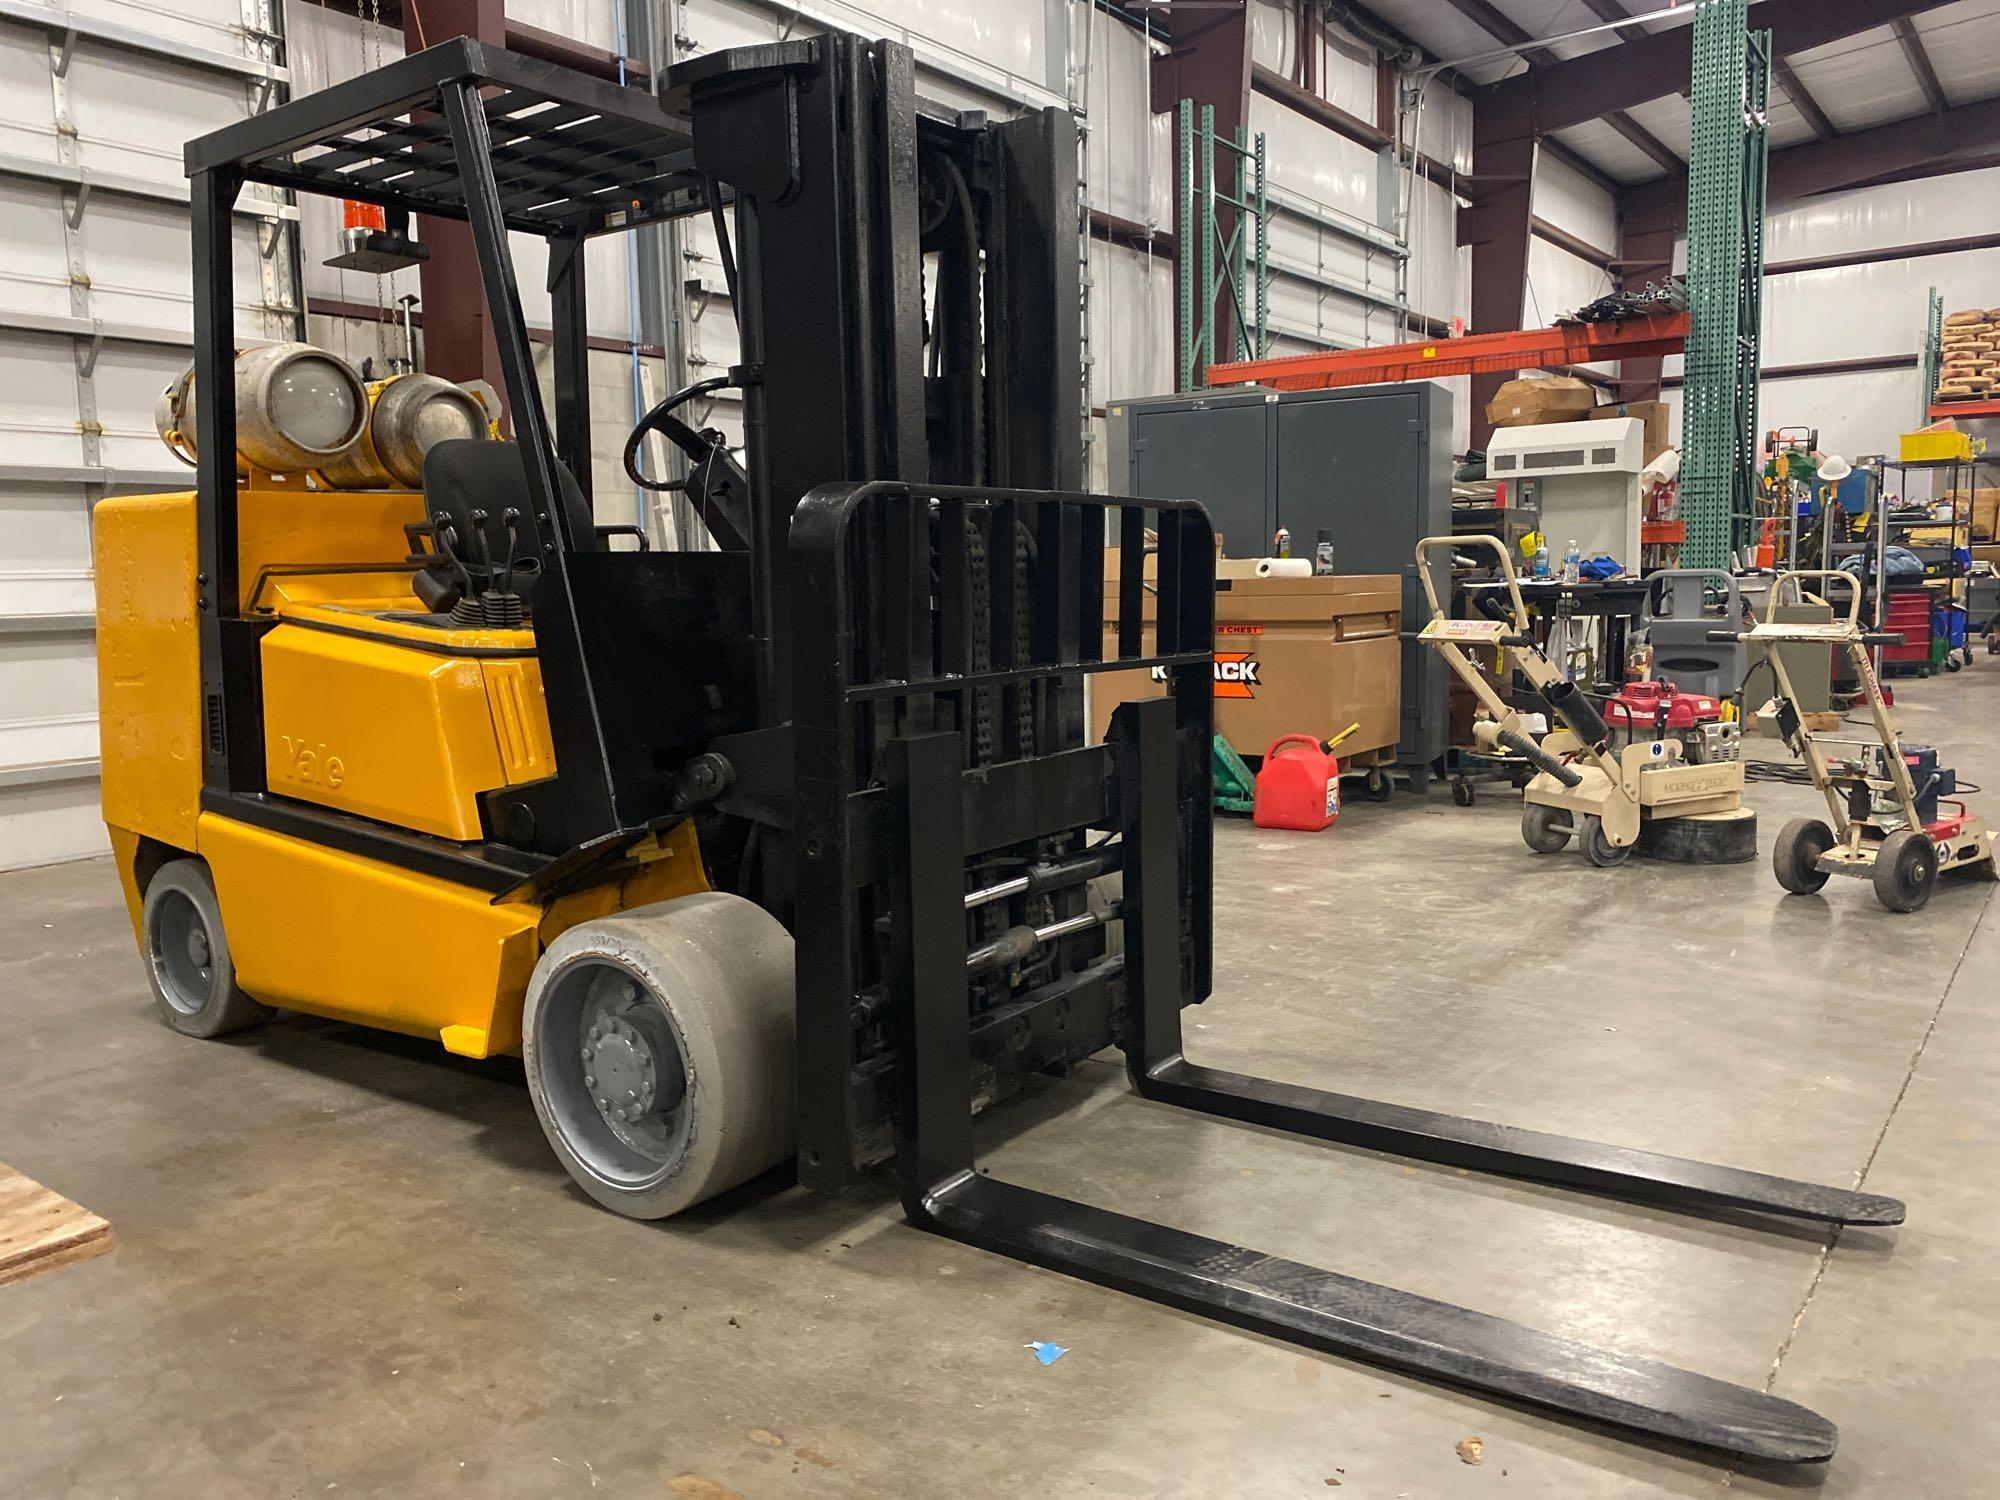 YALE LP FORKLIFT MODEL CLC120, APPROX. 12,000 LB CAPACITY, TILT, SIDE SHIFT, RUNS AND OPERATES - Image 4 of 10